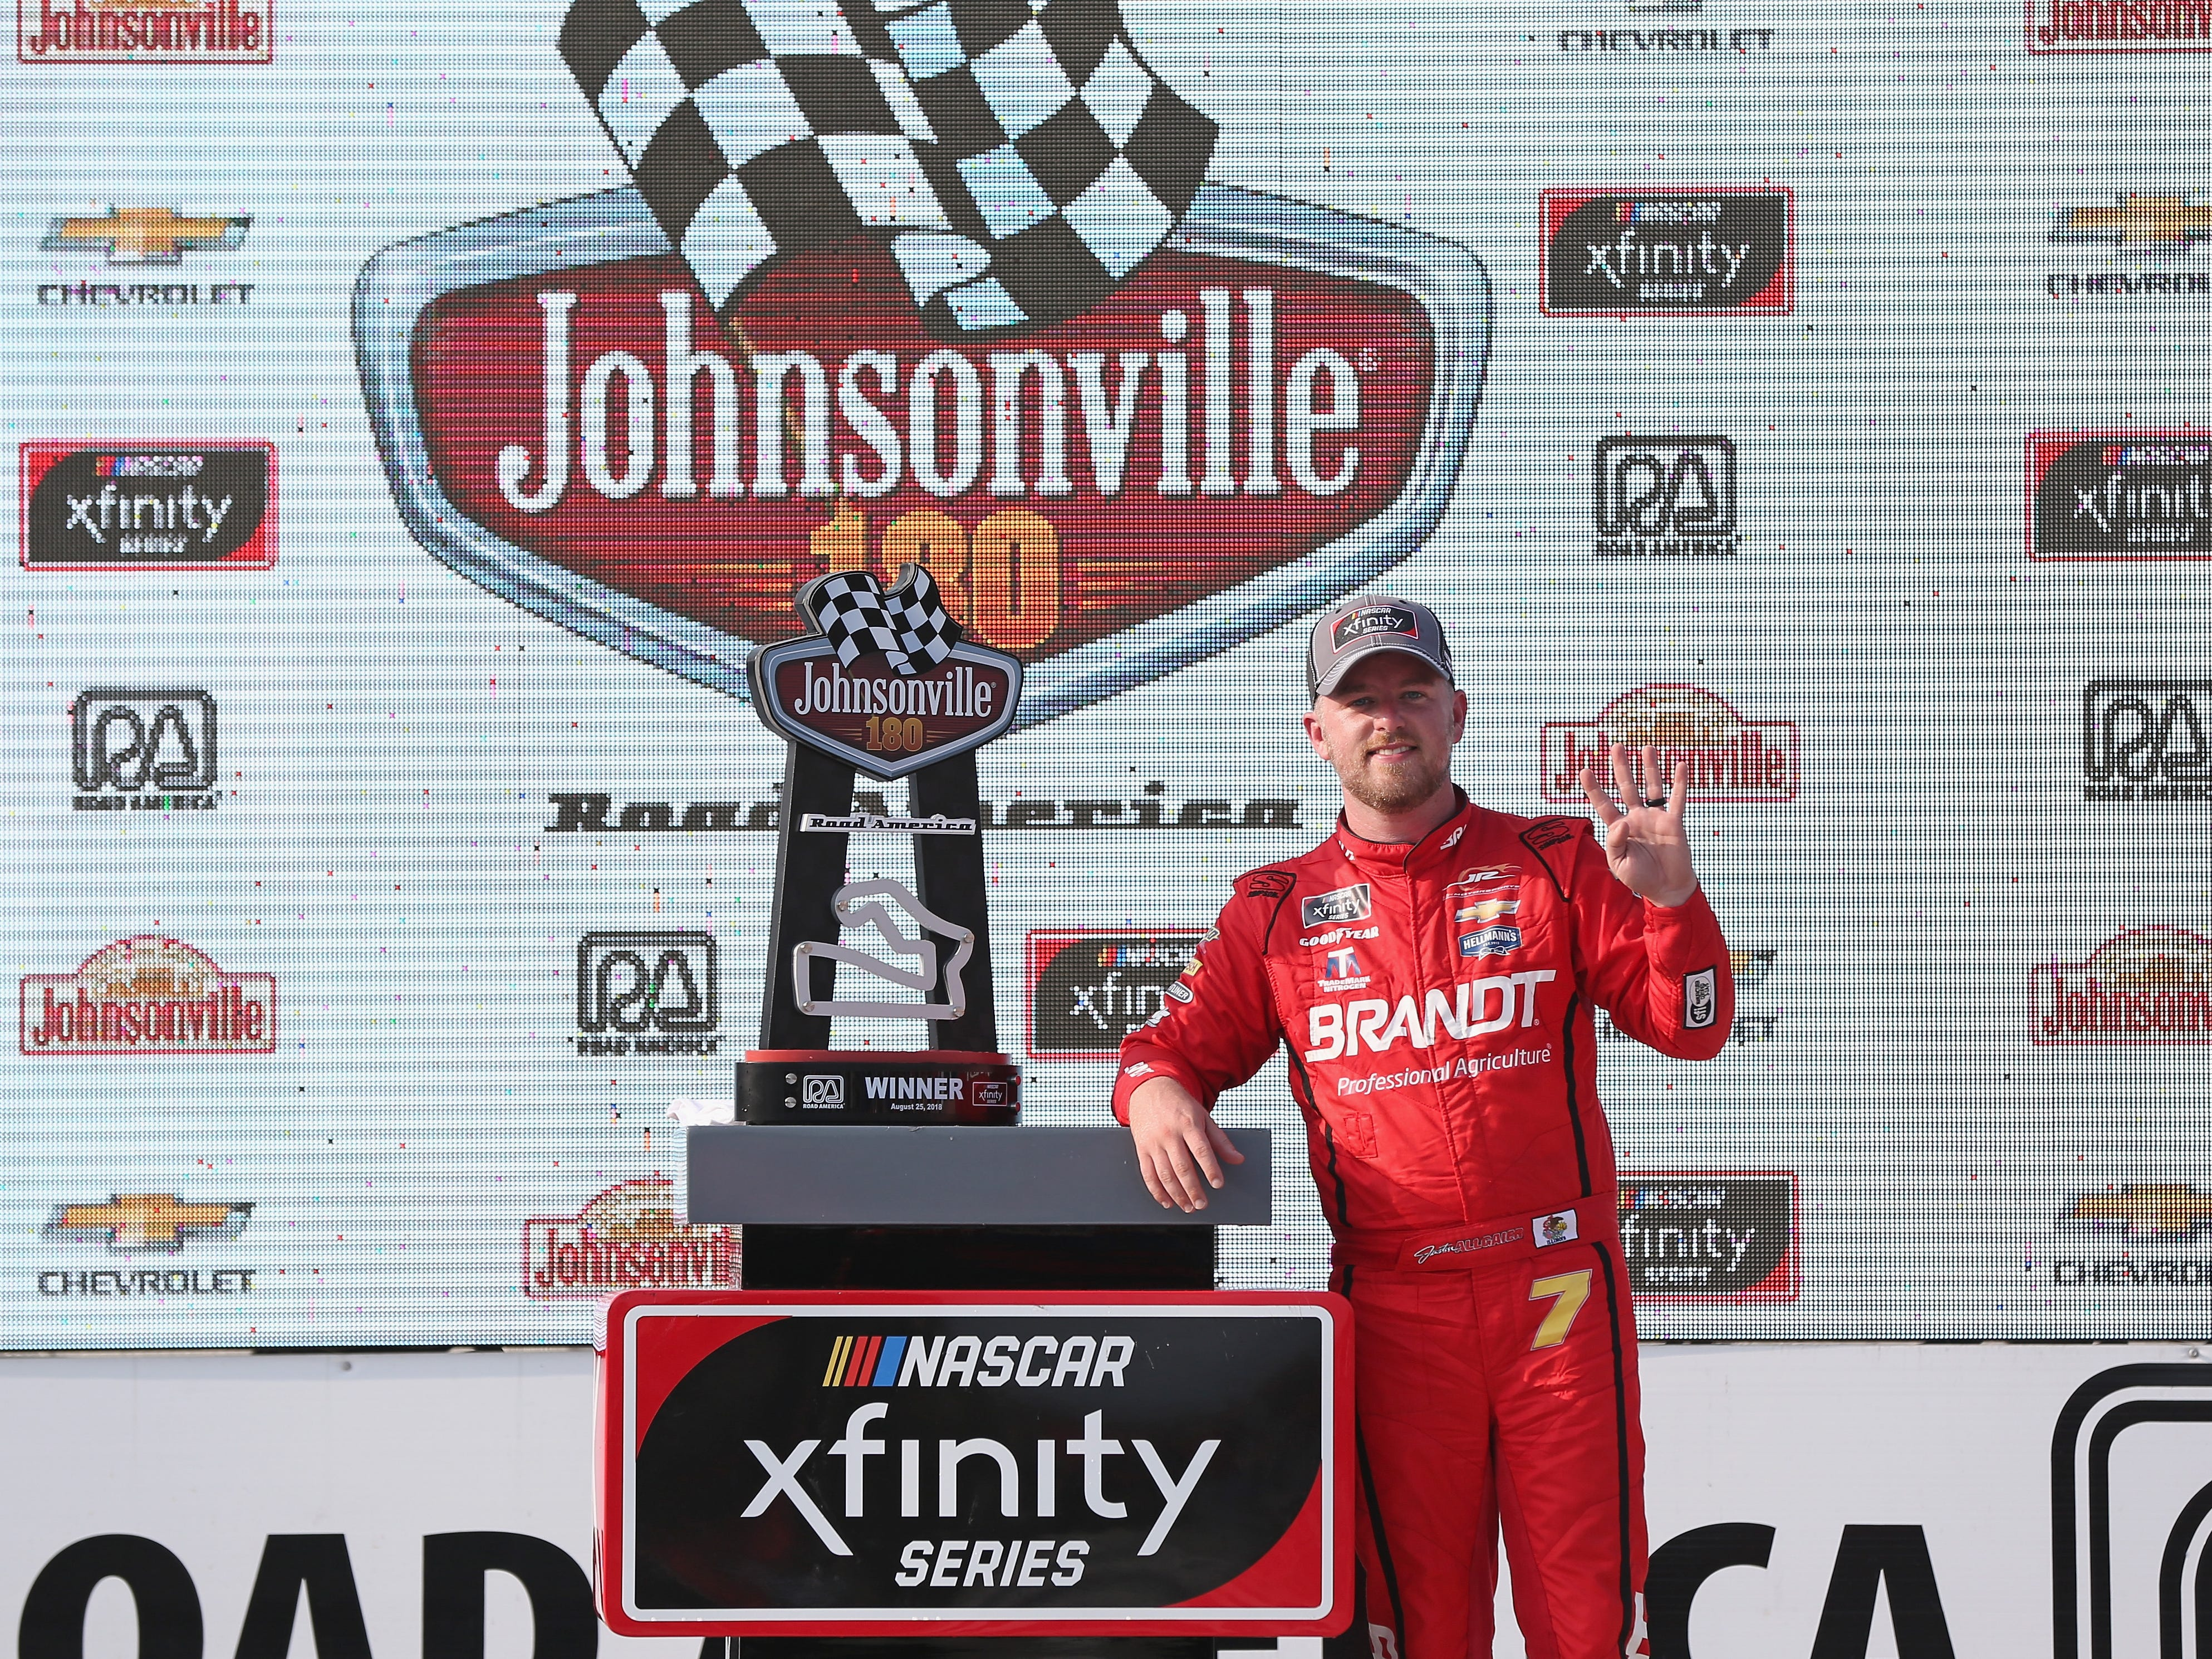 Justin Allgaier stands next to the trophy for winning the Johnsonville 180 on Saturday.